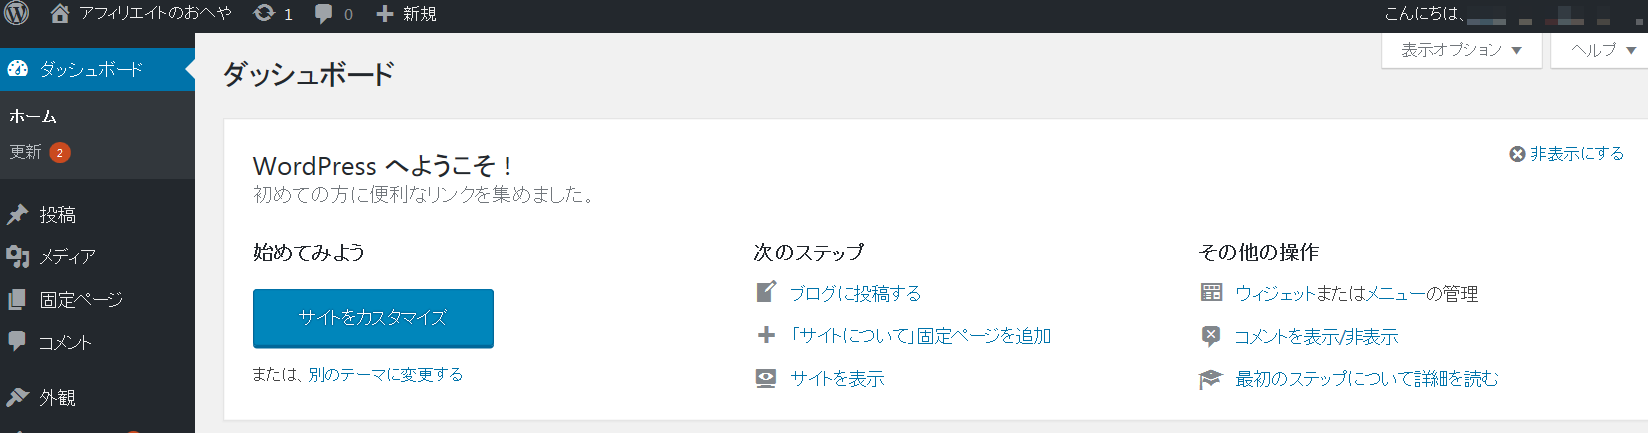 wordpress-installの写真17